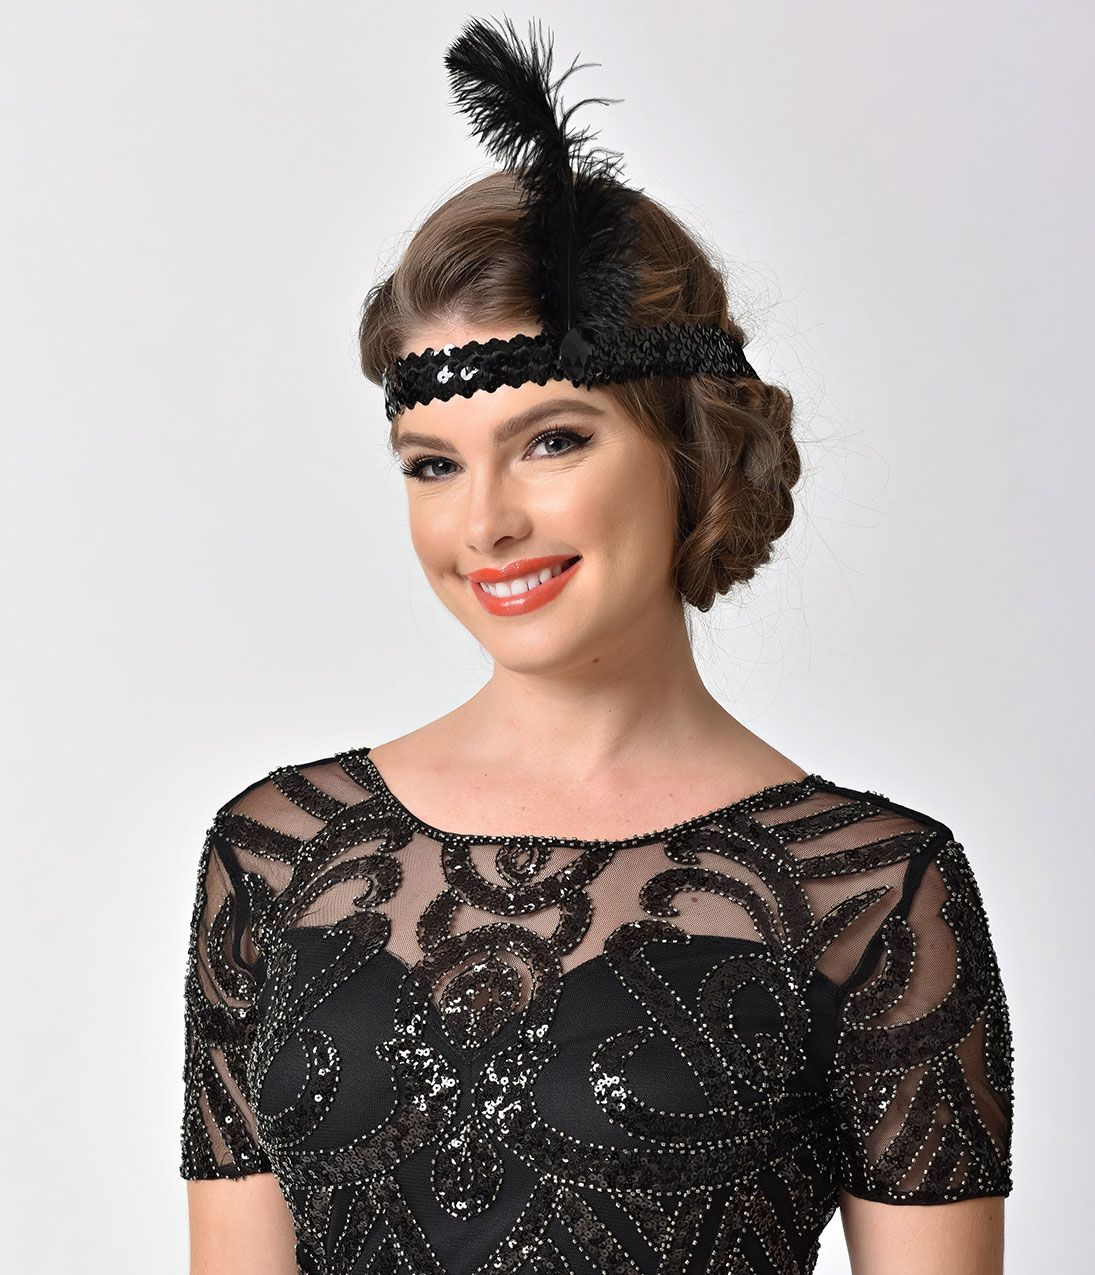 Pin On 1920s Style